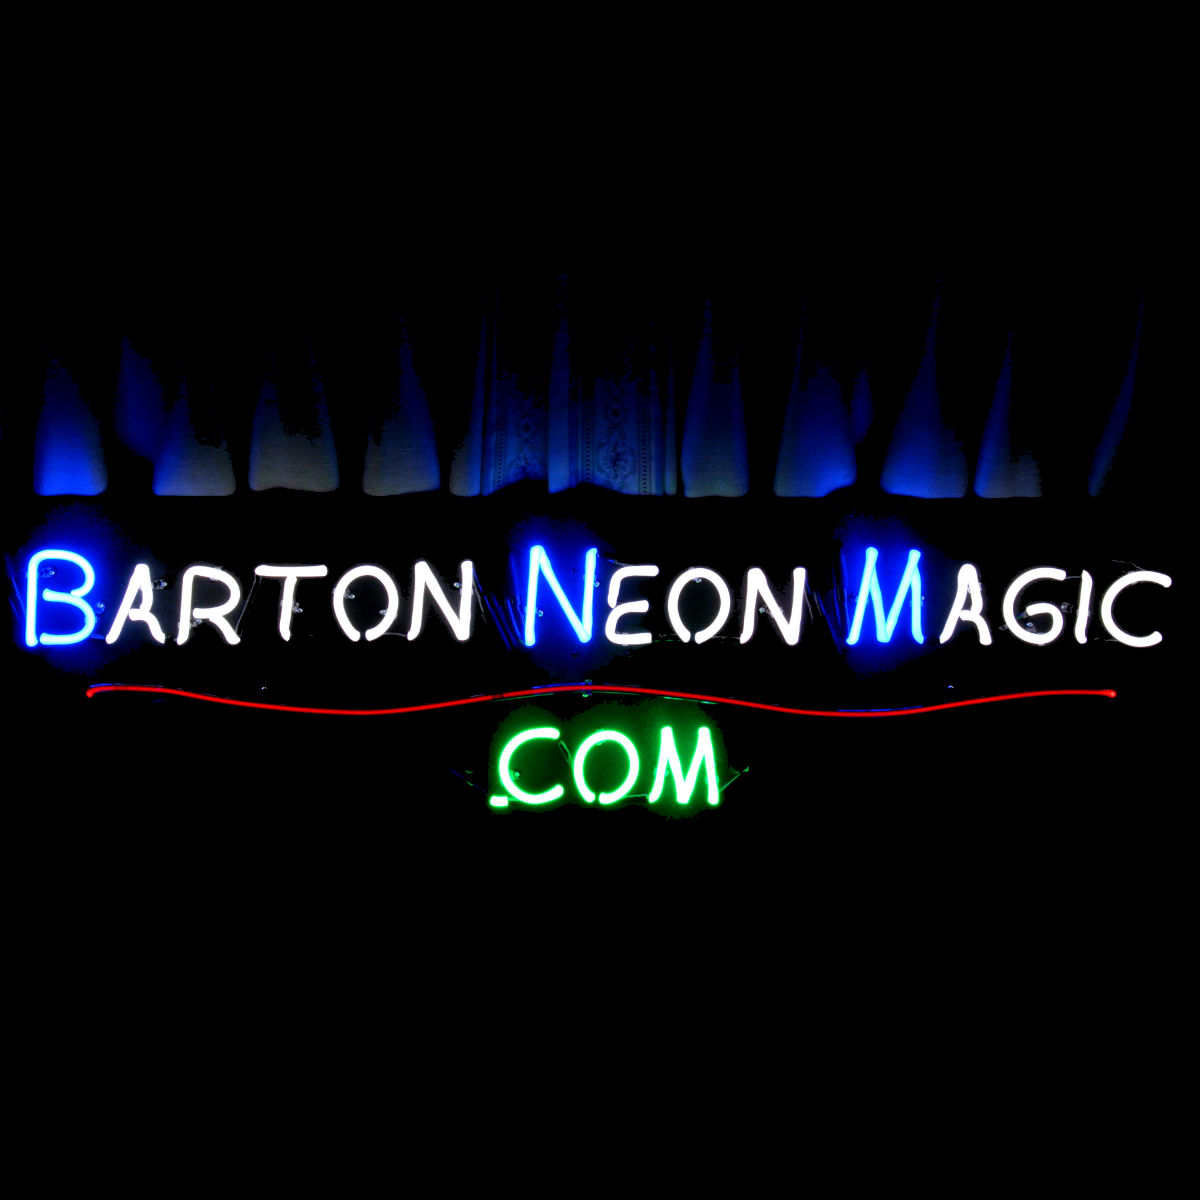 CUSTOM NEON LIGHTING BY JOHN BARTON - BartonNeonMagic.com